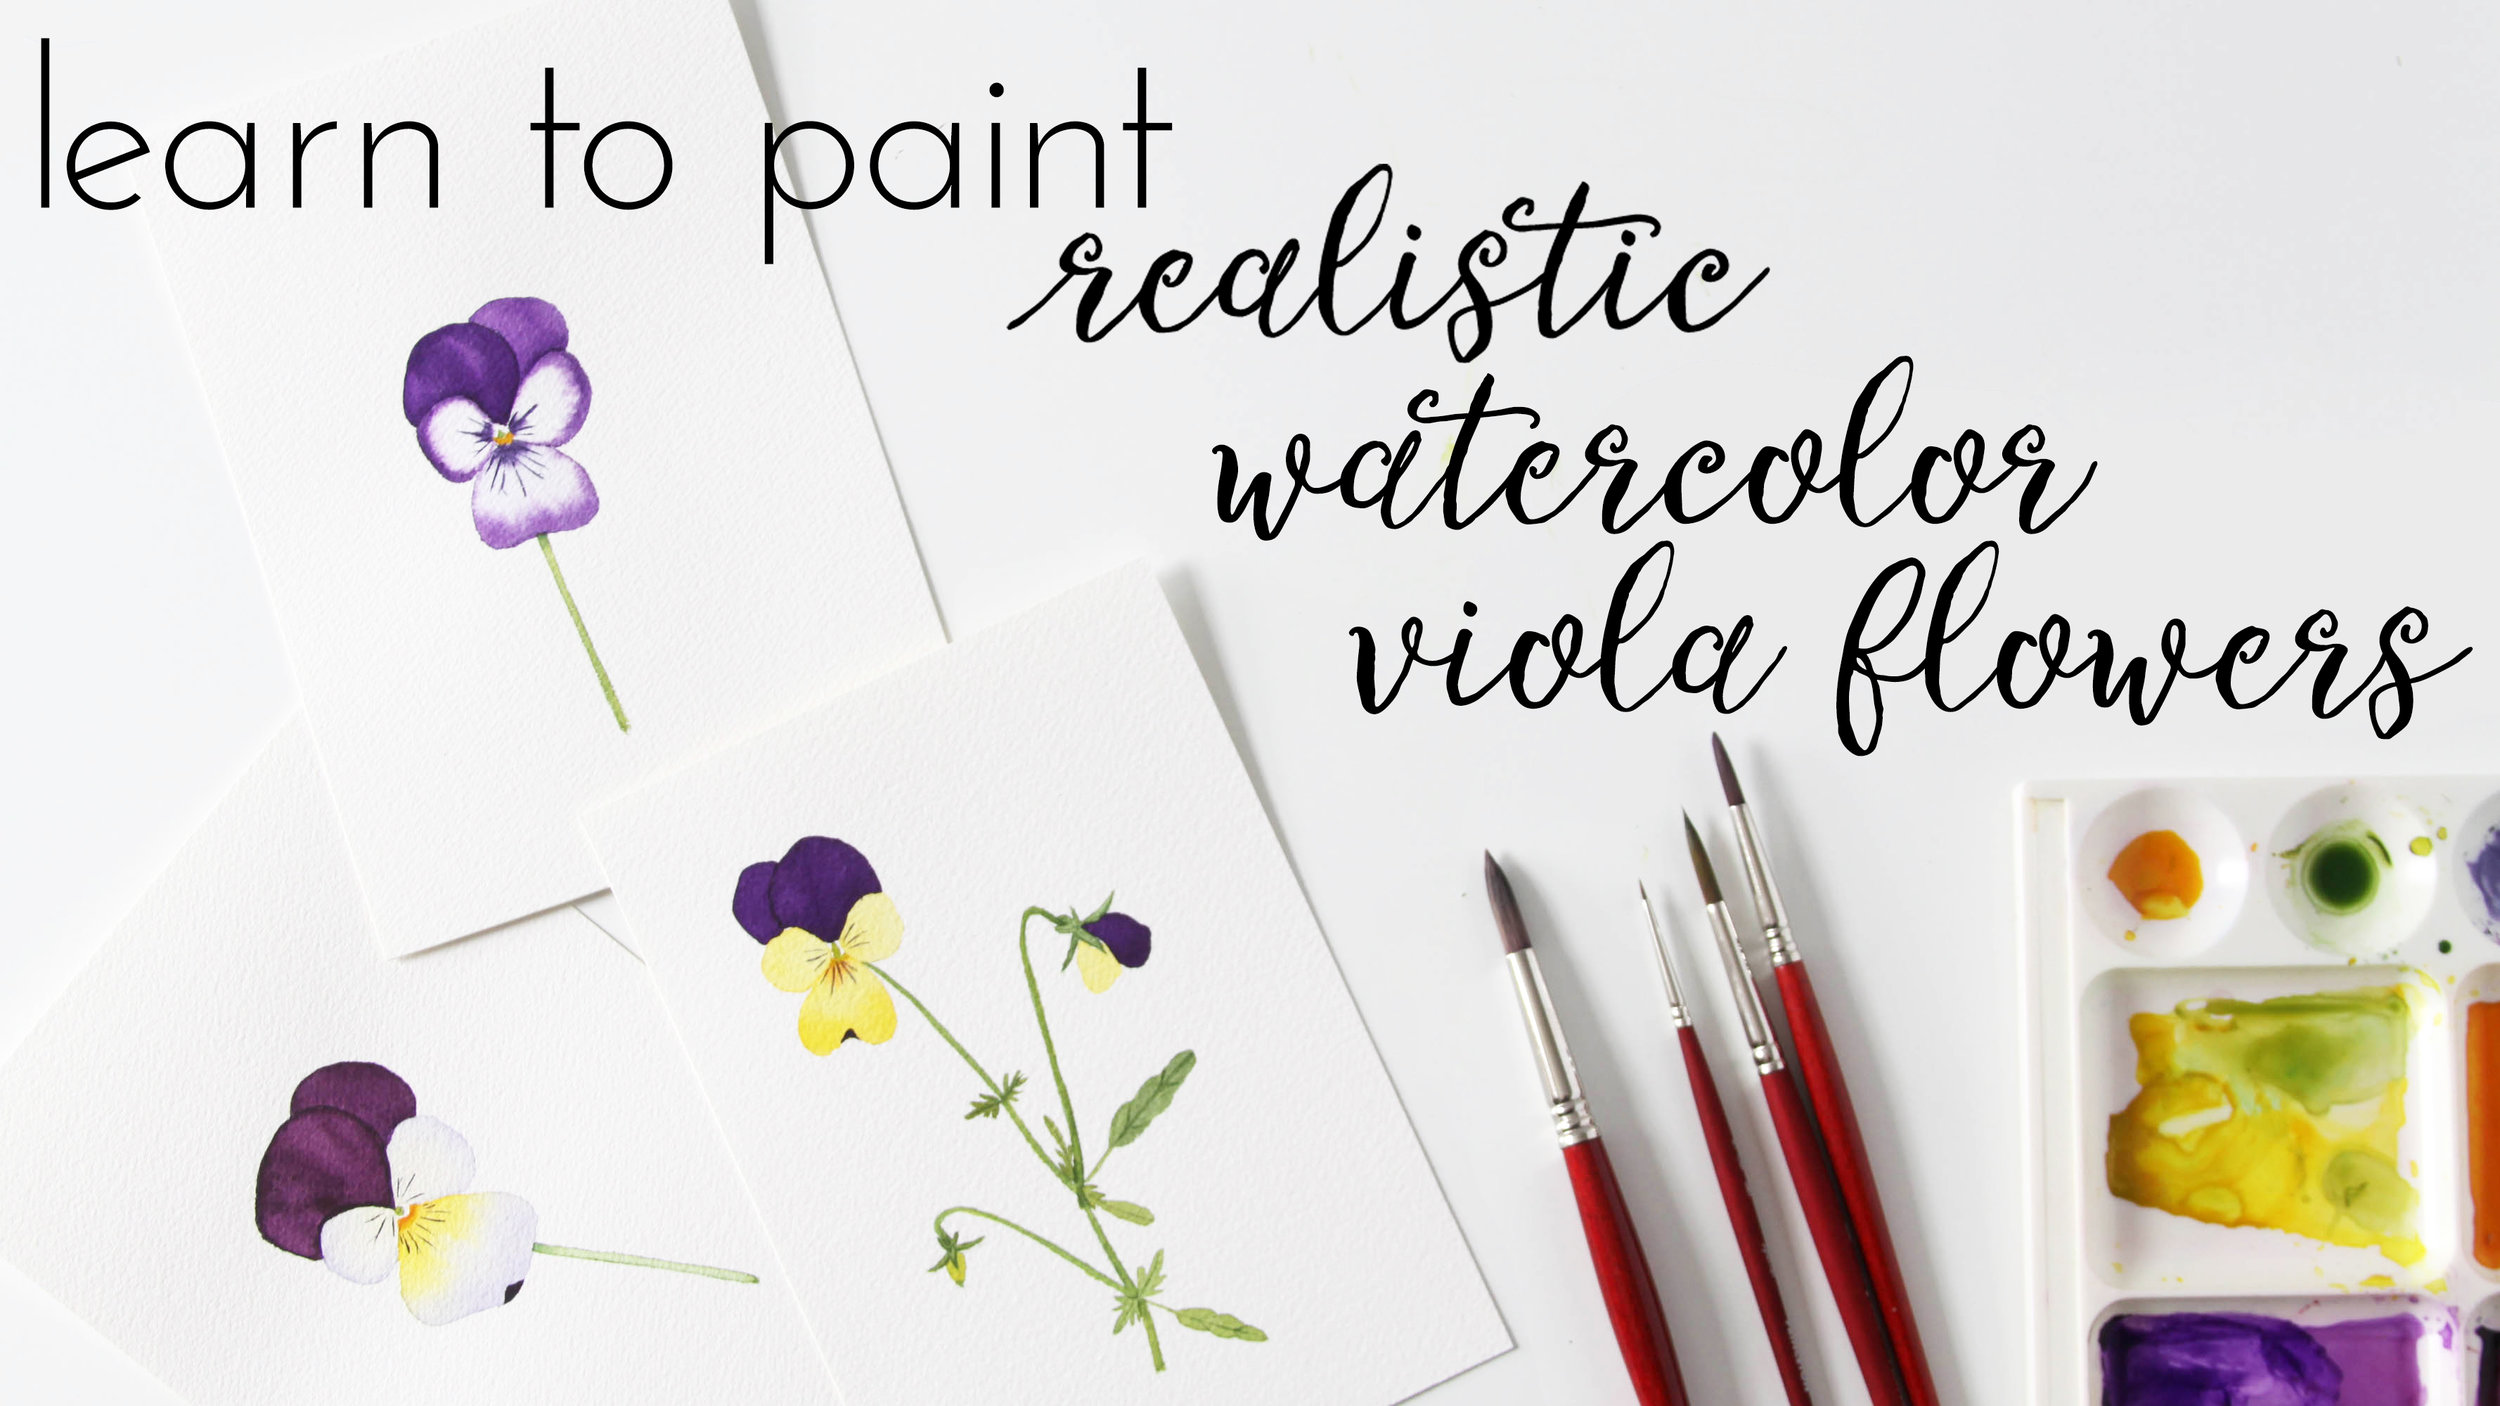 Learn to Paint Realistic Watercolor Viola Flowers a Skillshare Class with Anne Butera